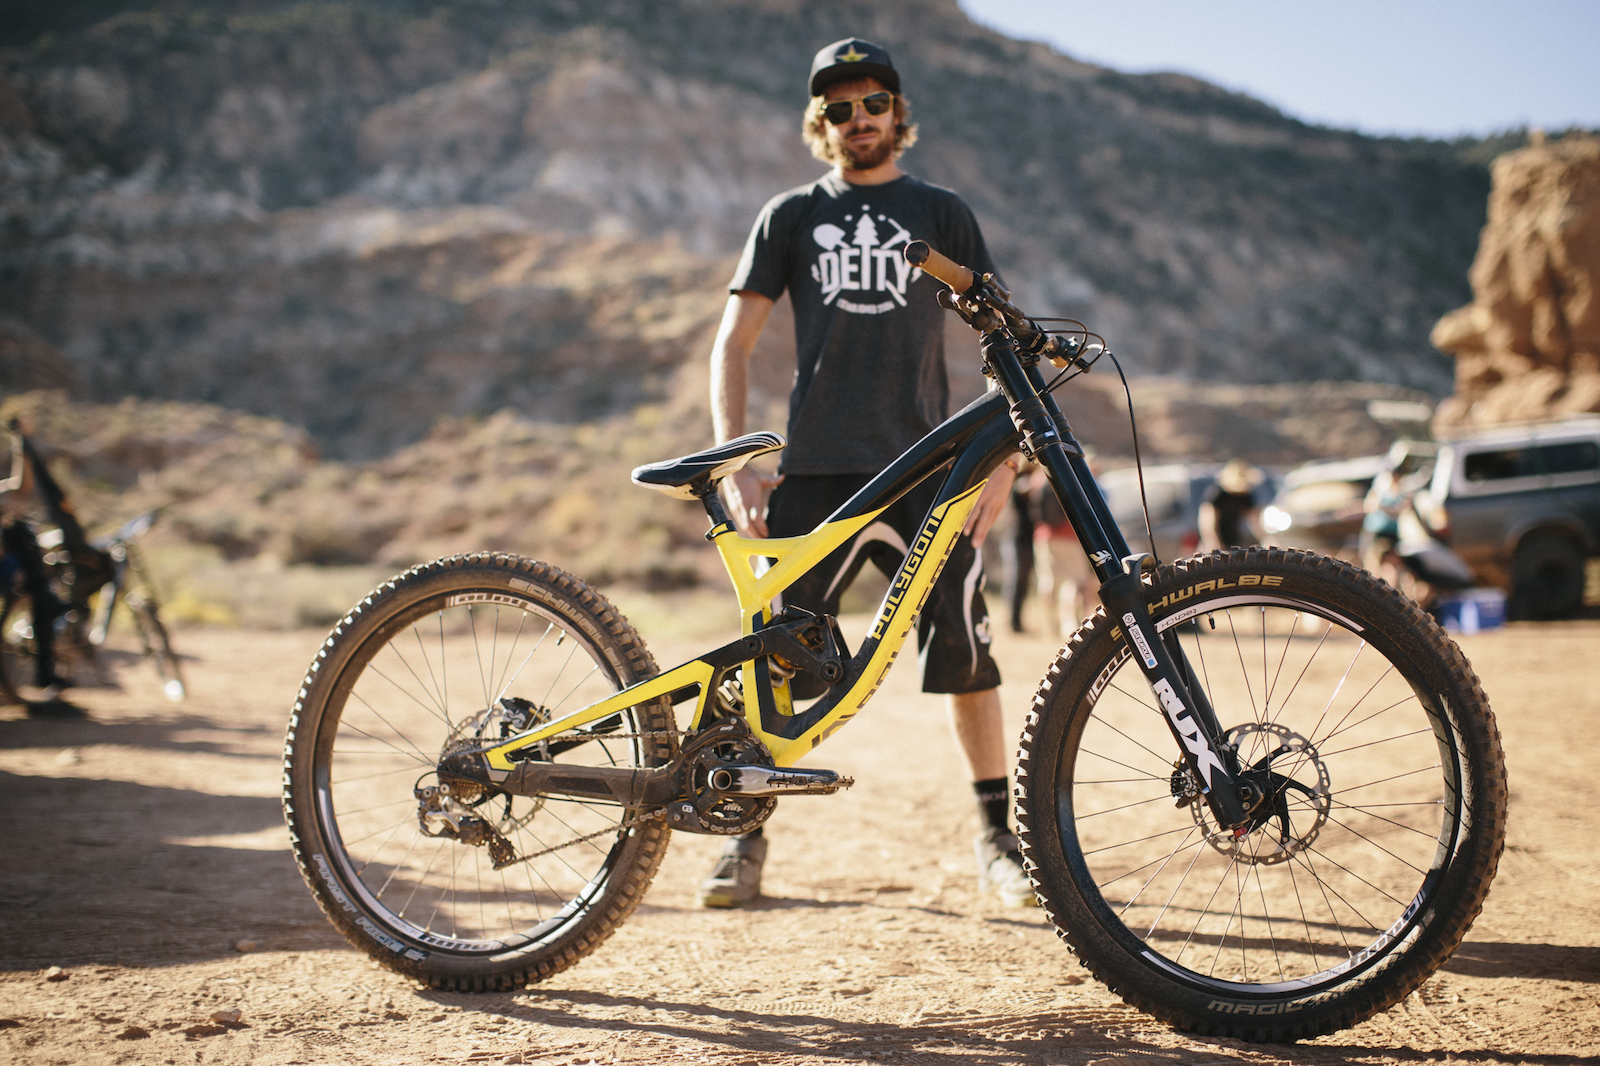 Kurt Sorge at RedBull Rampage 2015 Virgin Utah USA